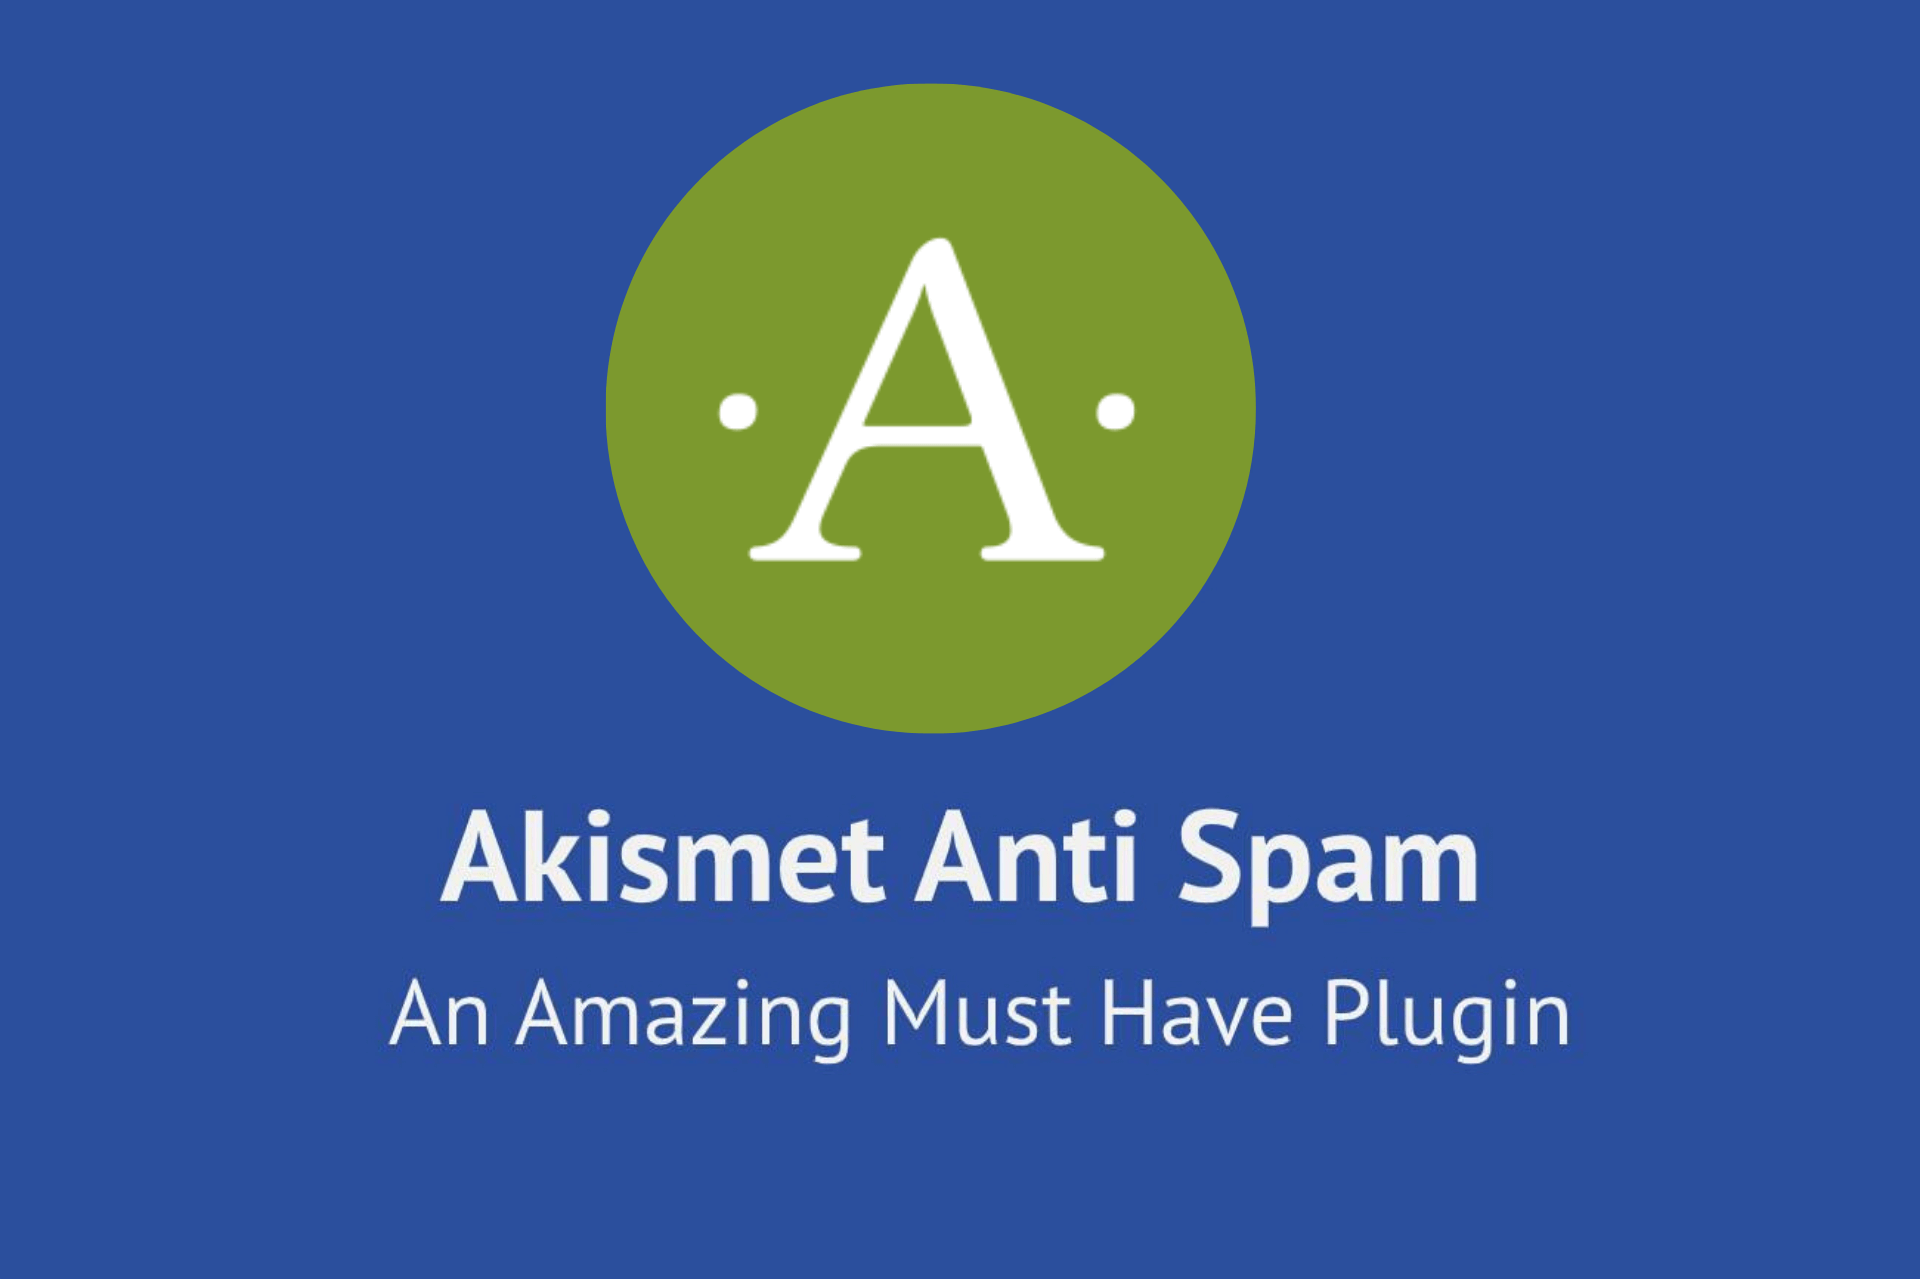 Akismet Anti-Spam-